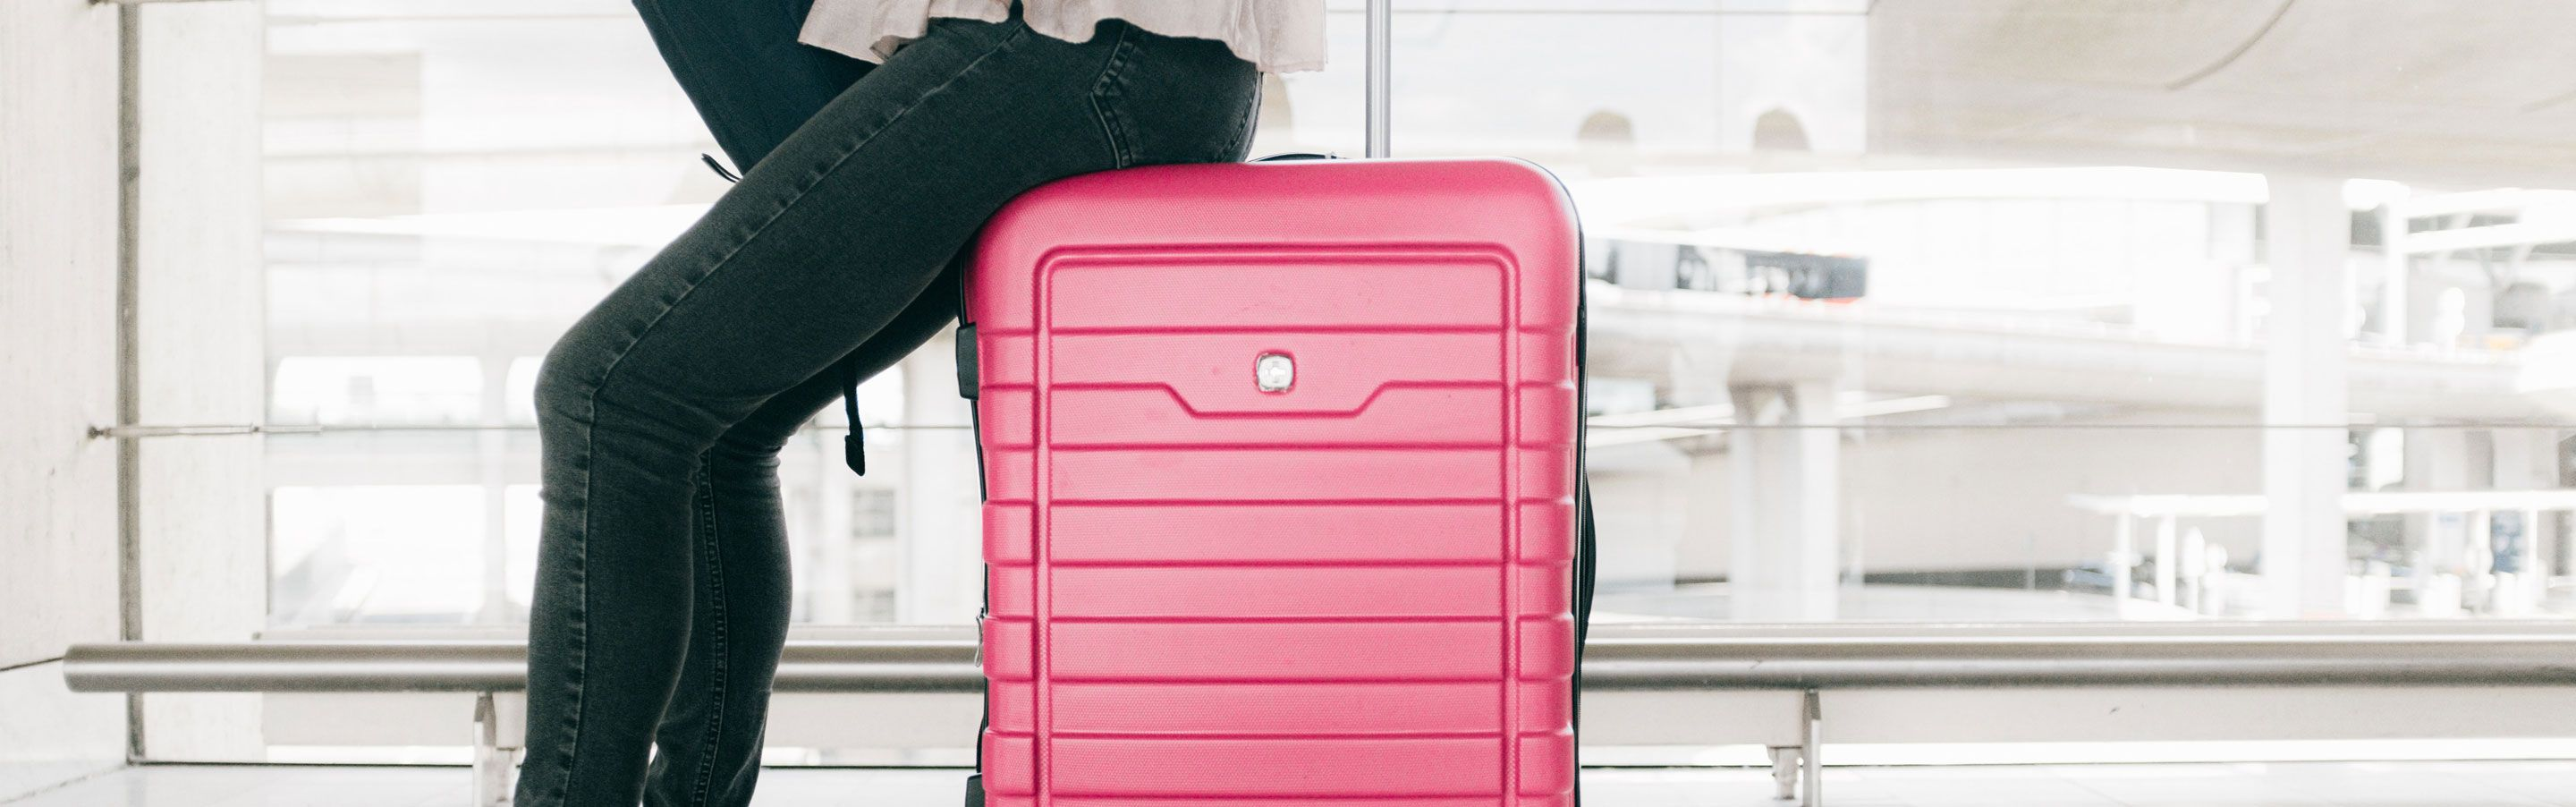 Freelancer sitting on suitcase ready for going back to work after the holidays